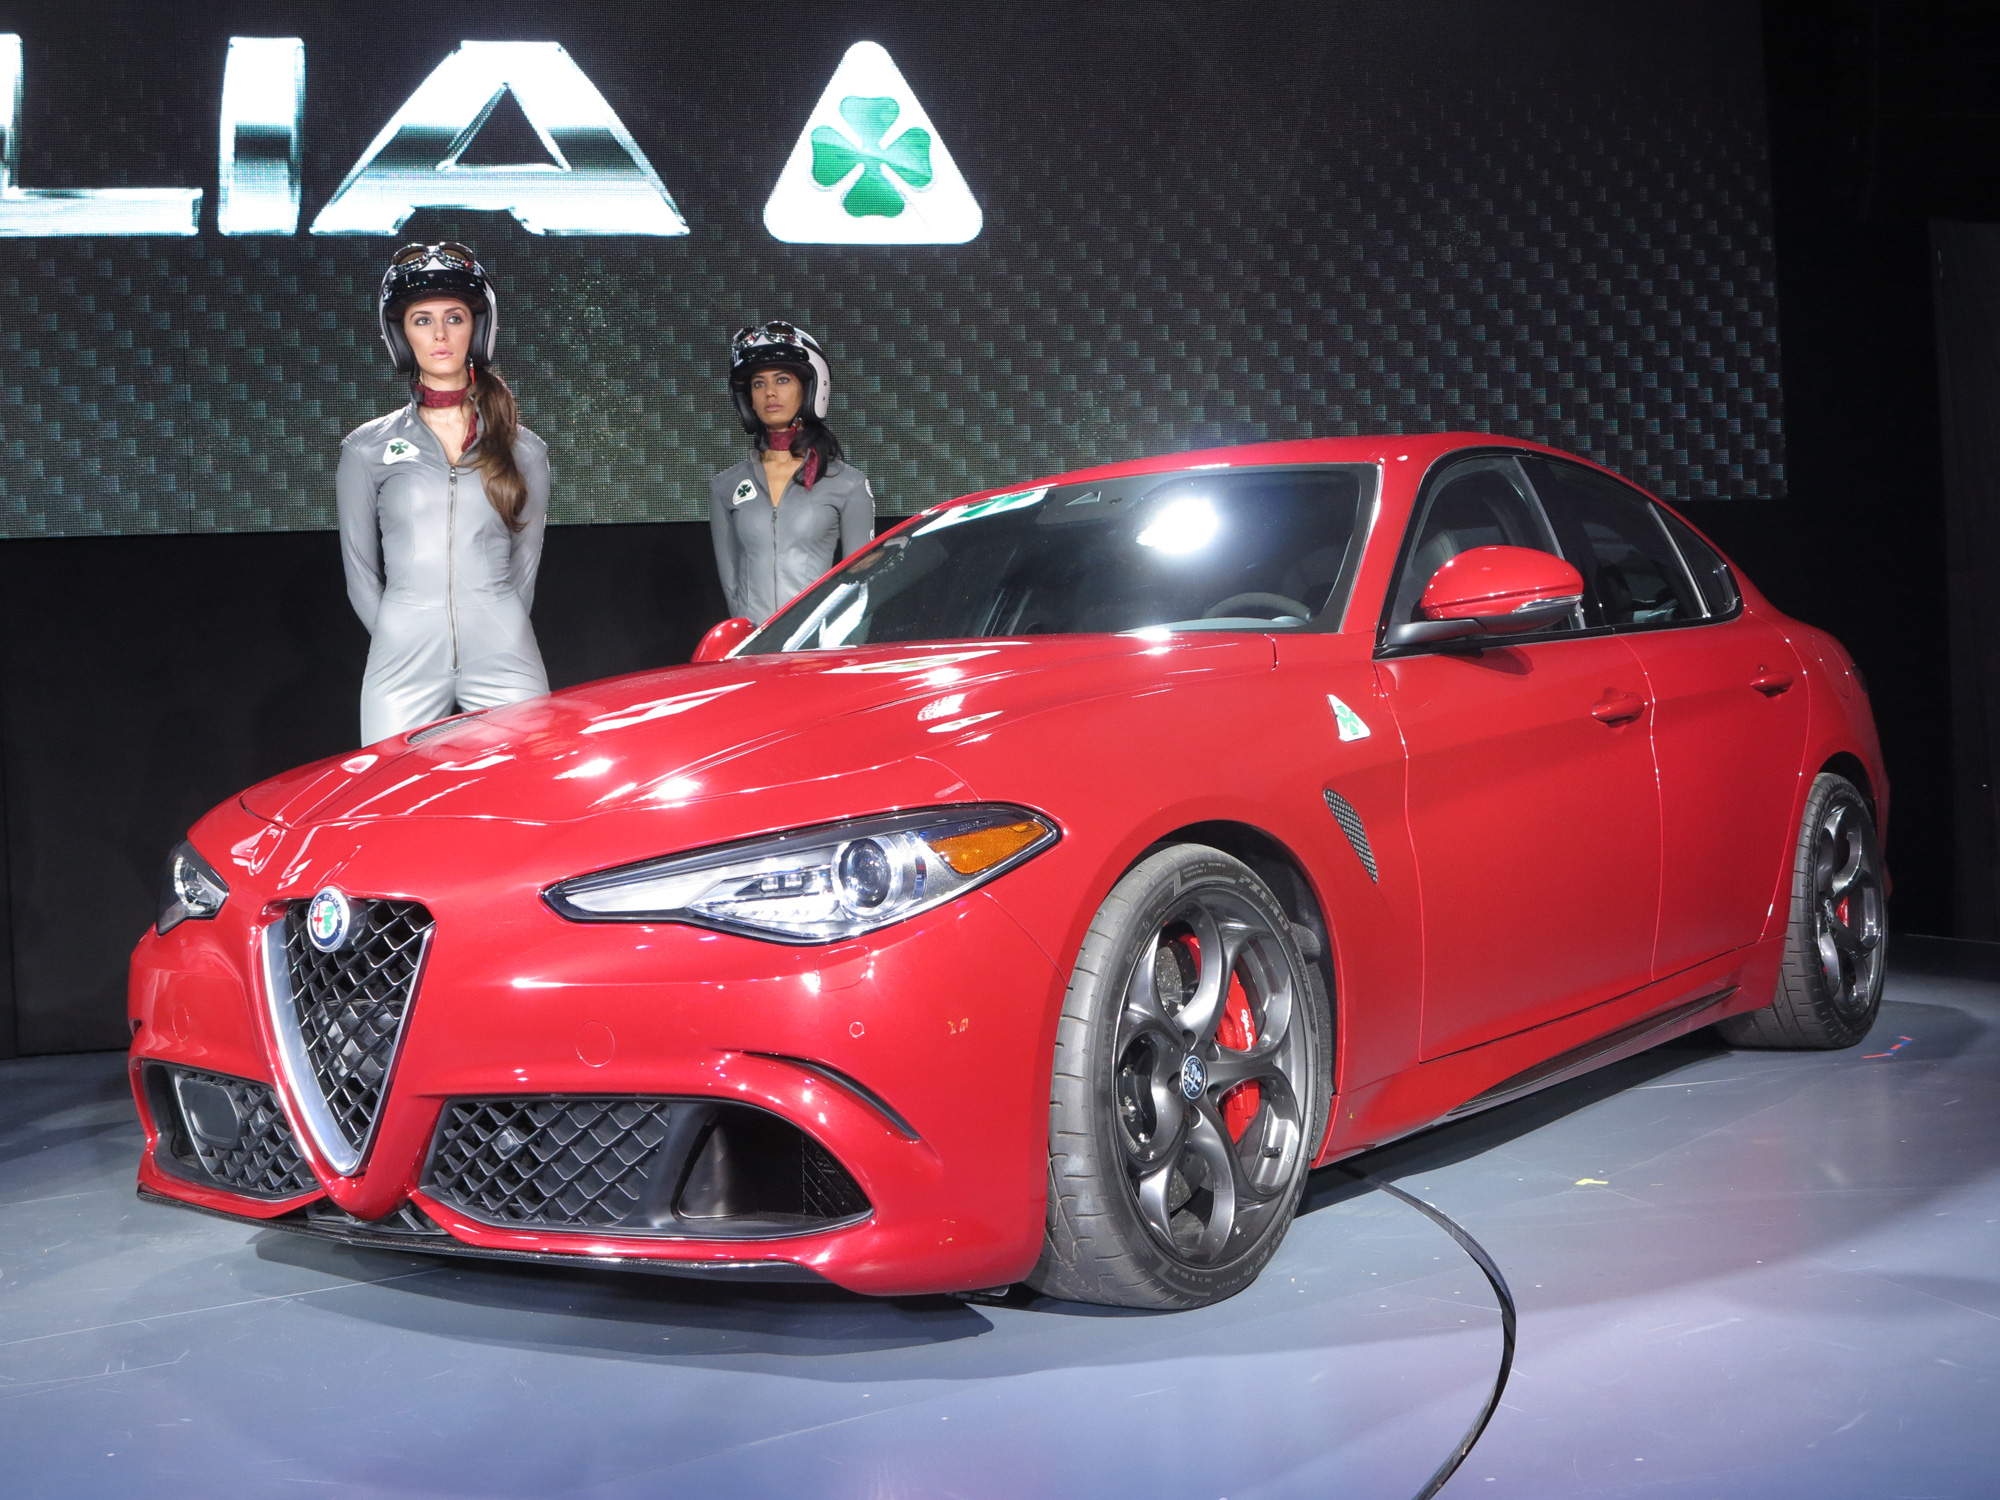 alfa romeo giulia pricing to start in the 40 000 range news. Black Bedroom Furniture Sets. Home Design Ideas